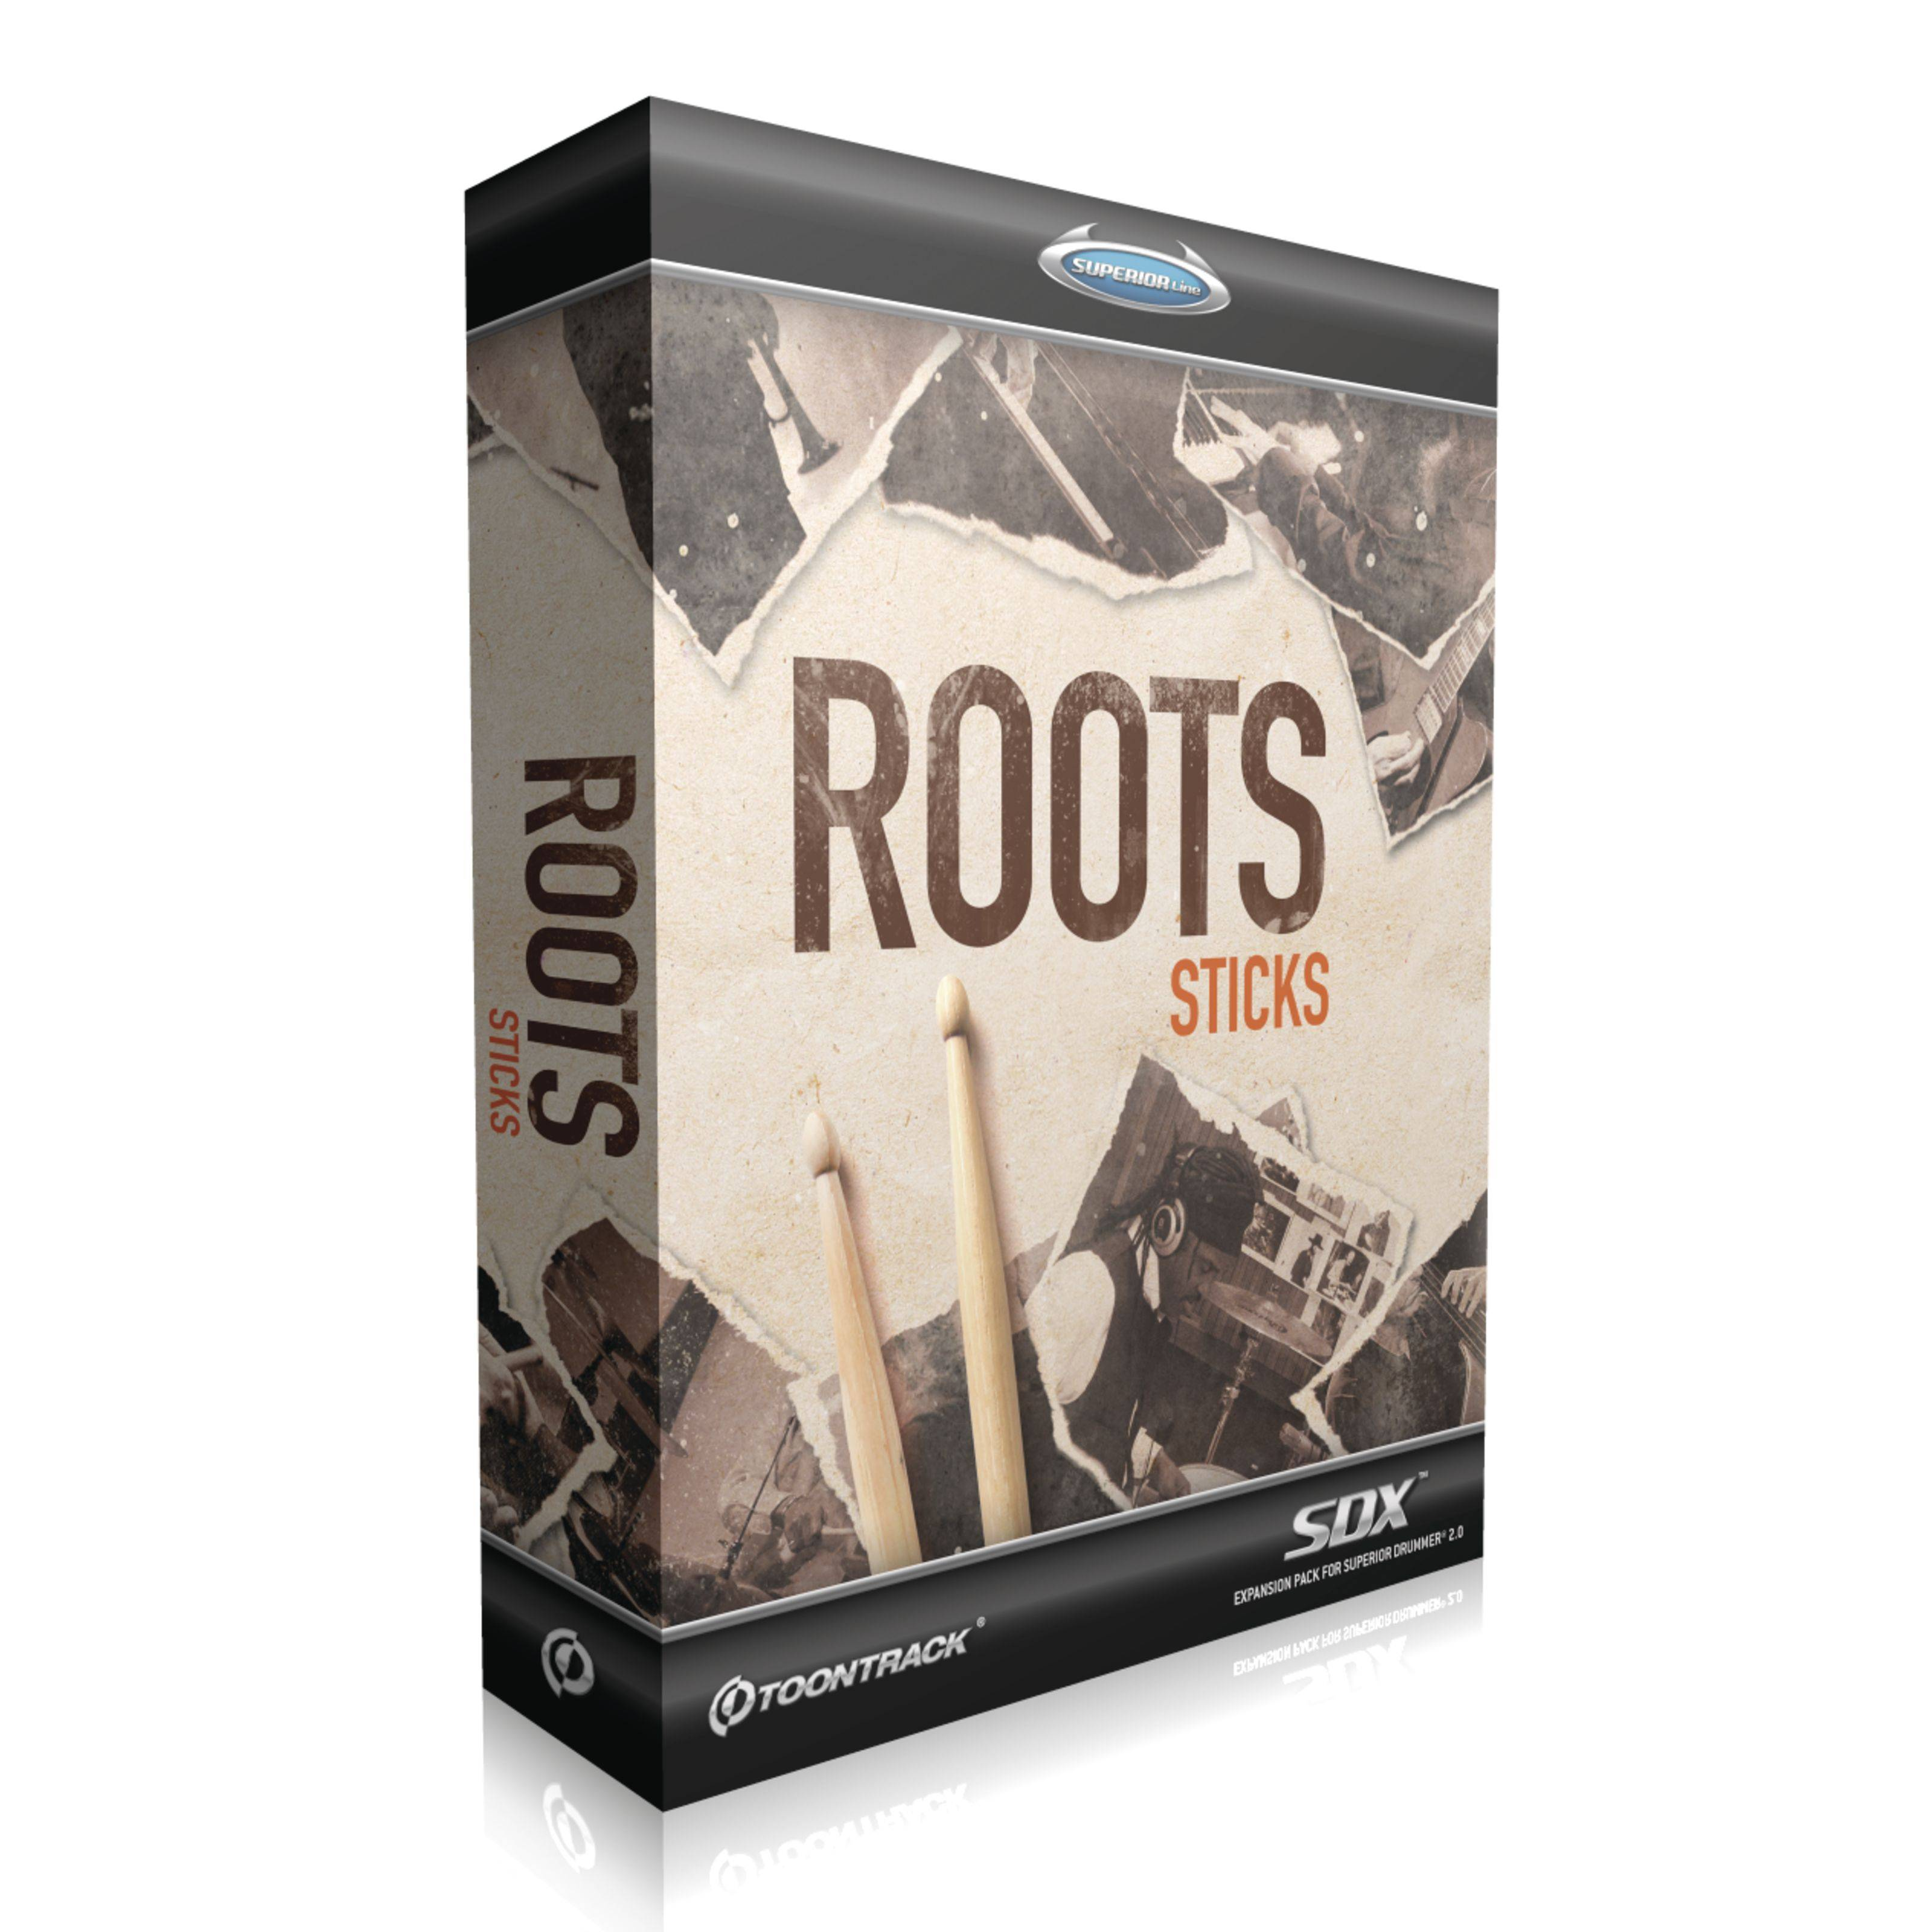 Toontrack SDX Roots: Sticks Superior Drummer 2 Library